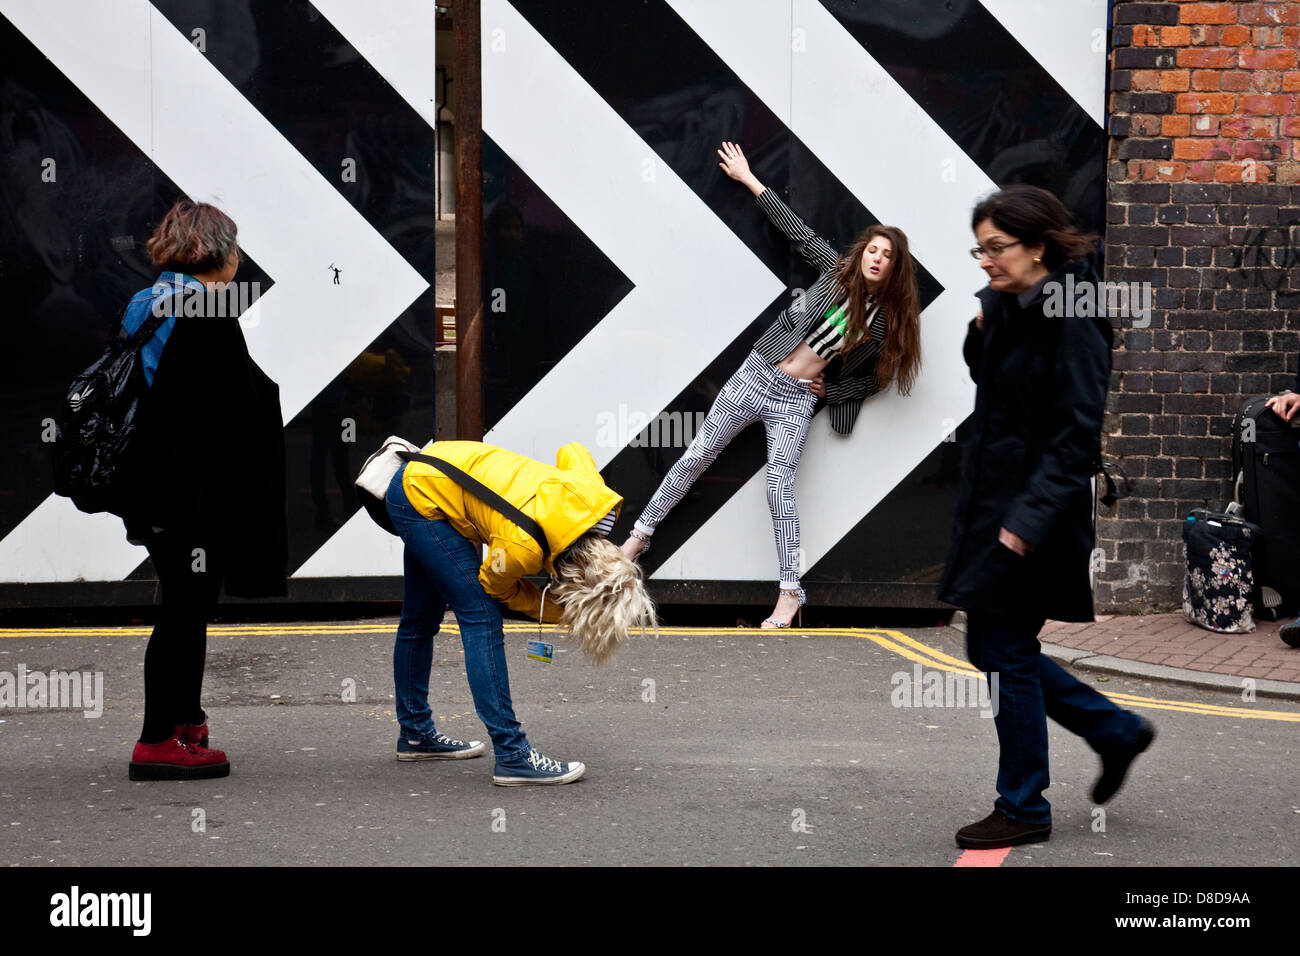 Photo Shoot, Brick Lane, London, England Stock Photo